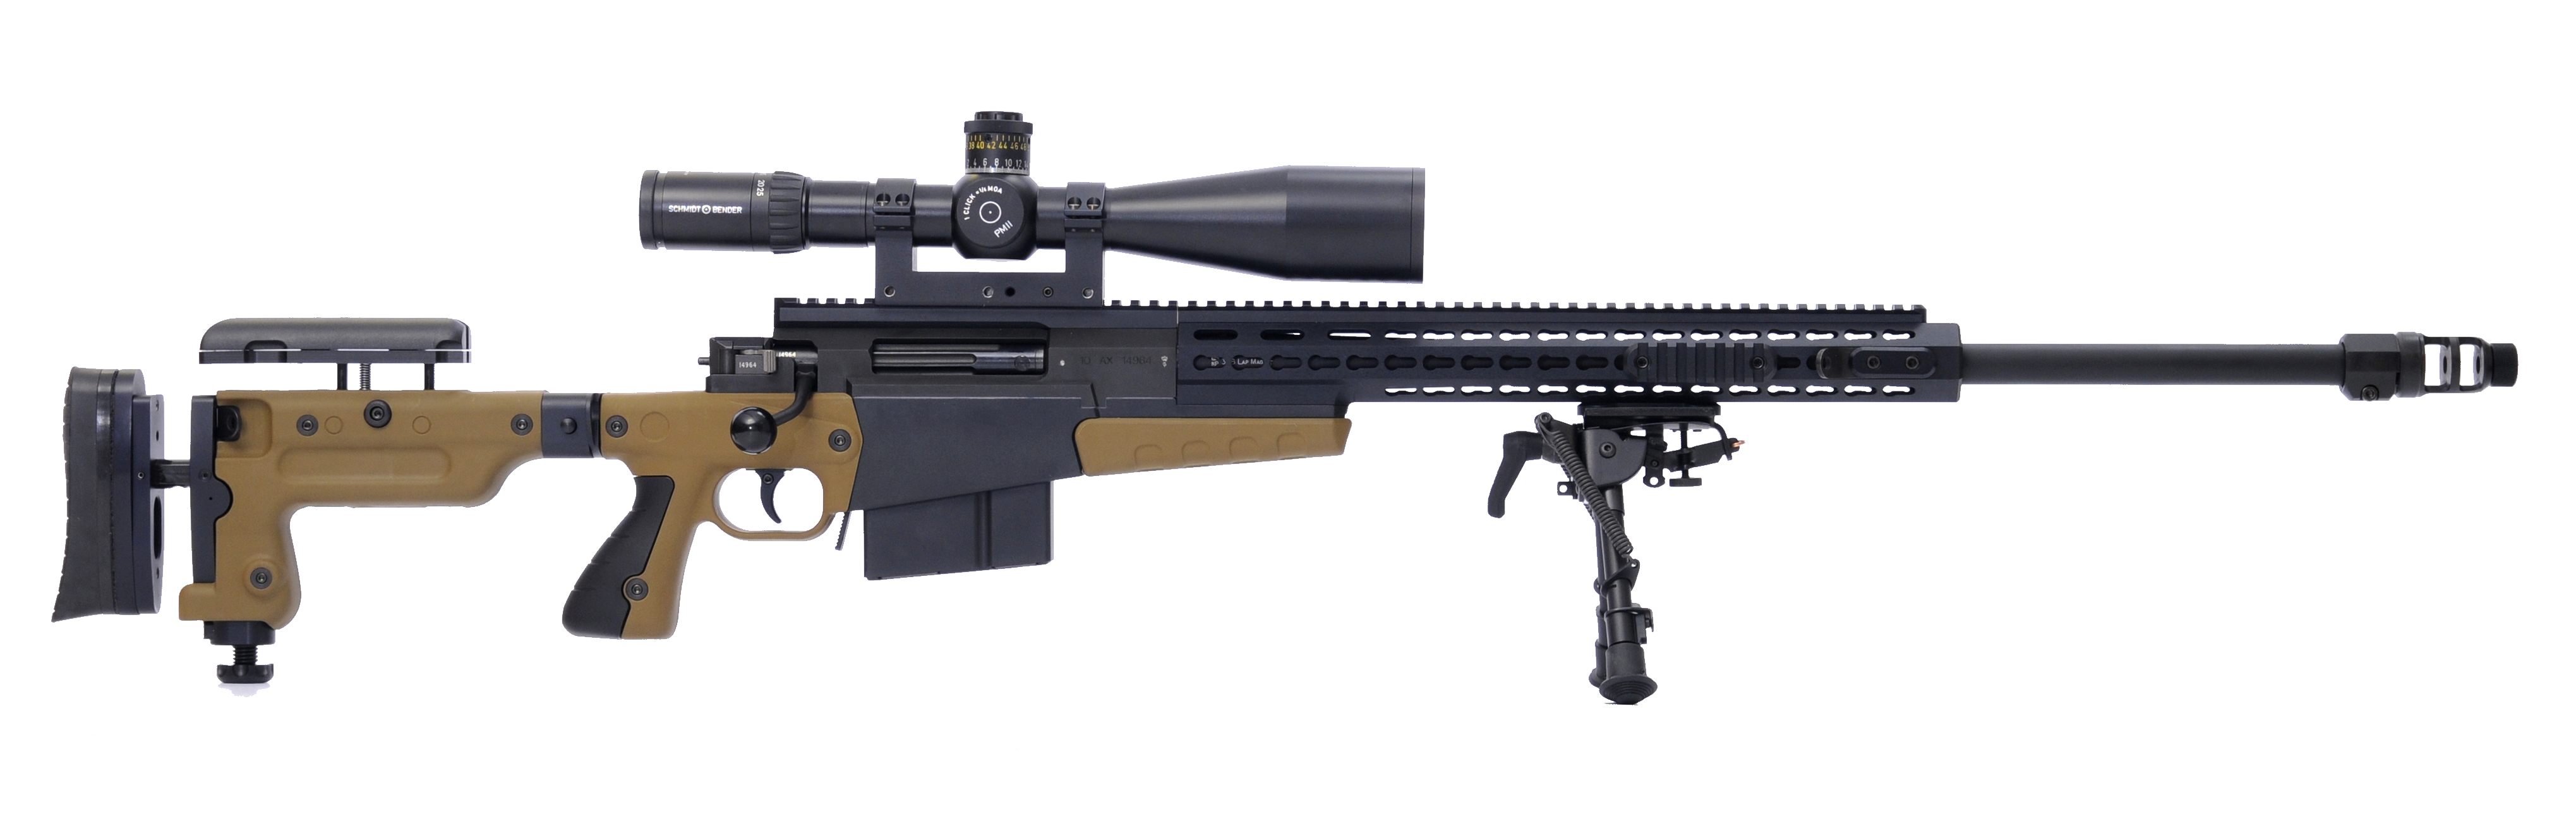 jpg transparent library Sniper rifle PNG